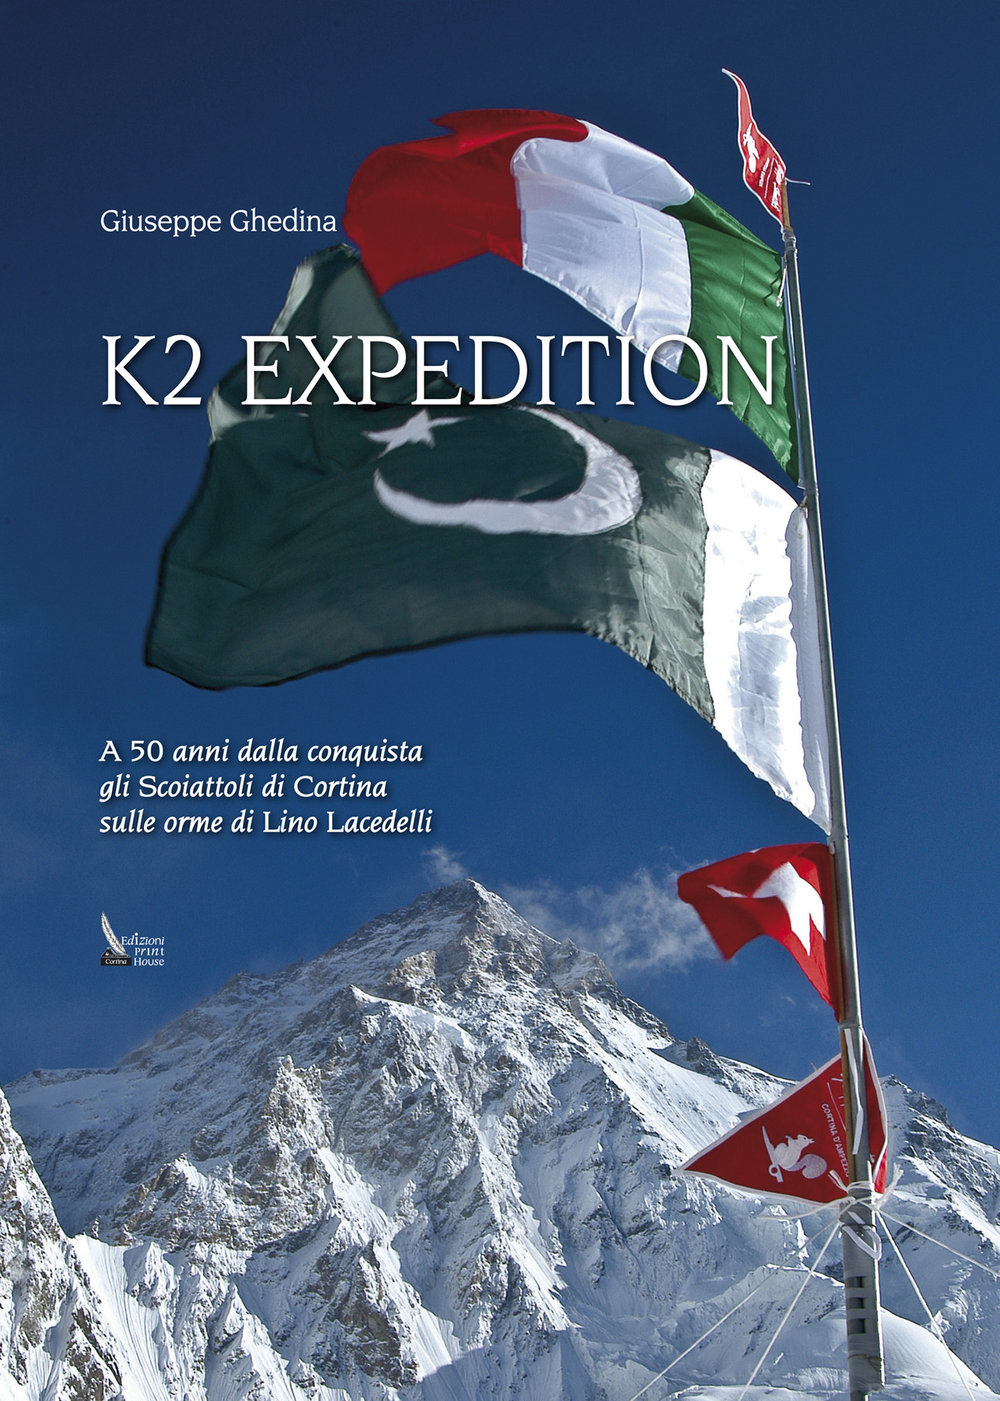 K2-expedition-2004-giuseppe-ghedina.jpg